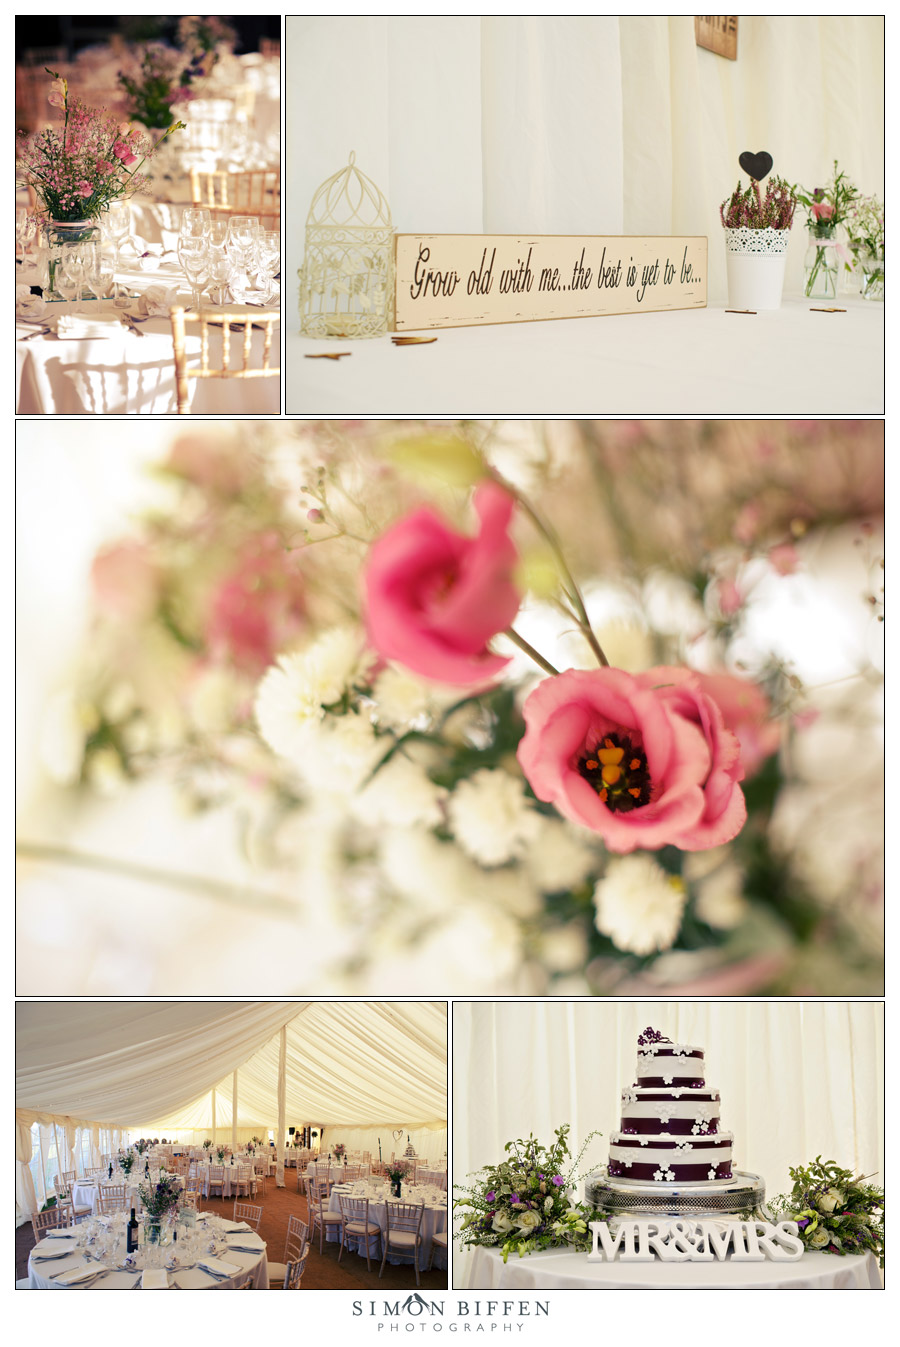 Wedding detail shots in the marquee - Simon Biffen Photography